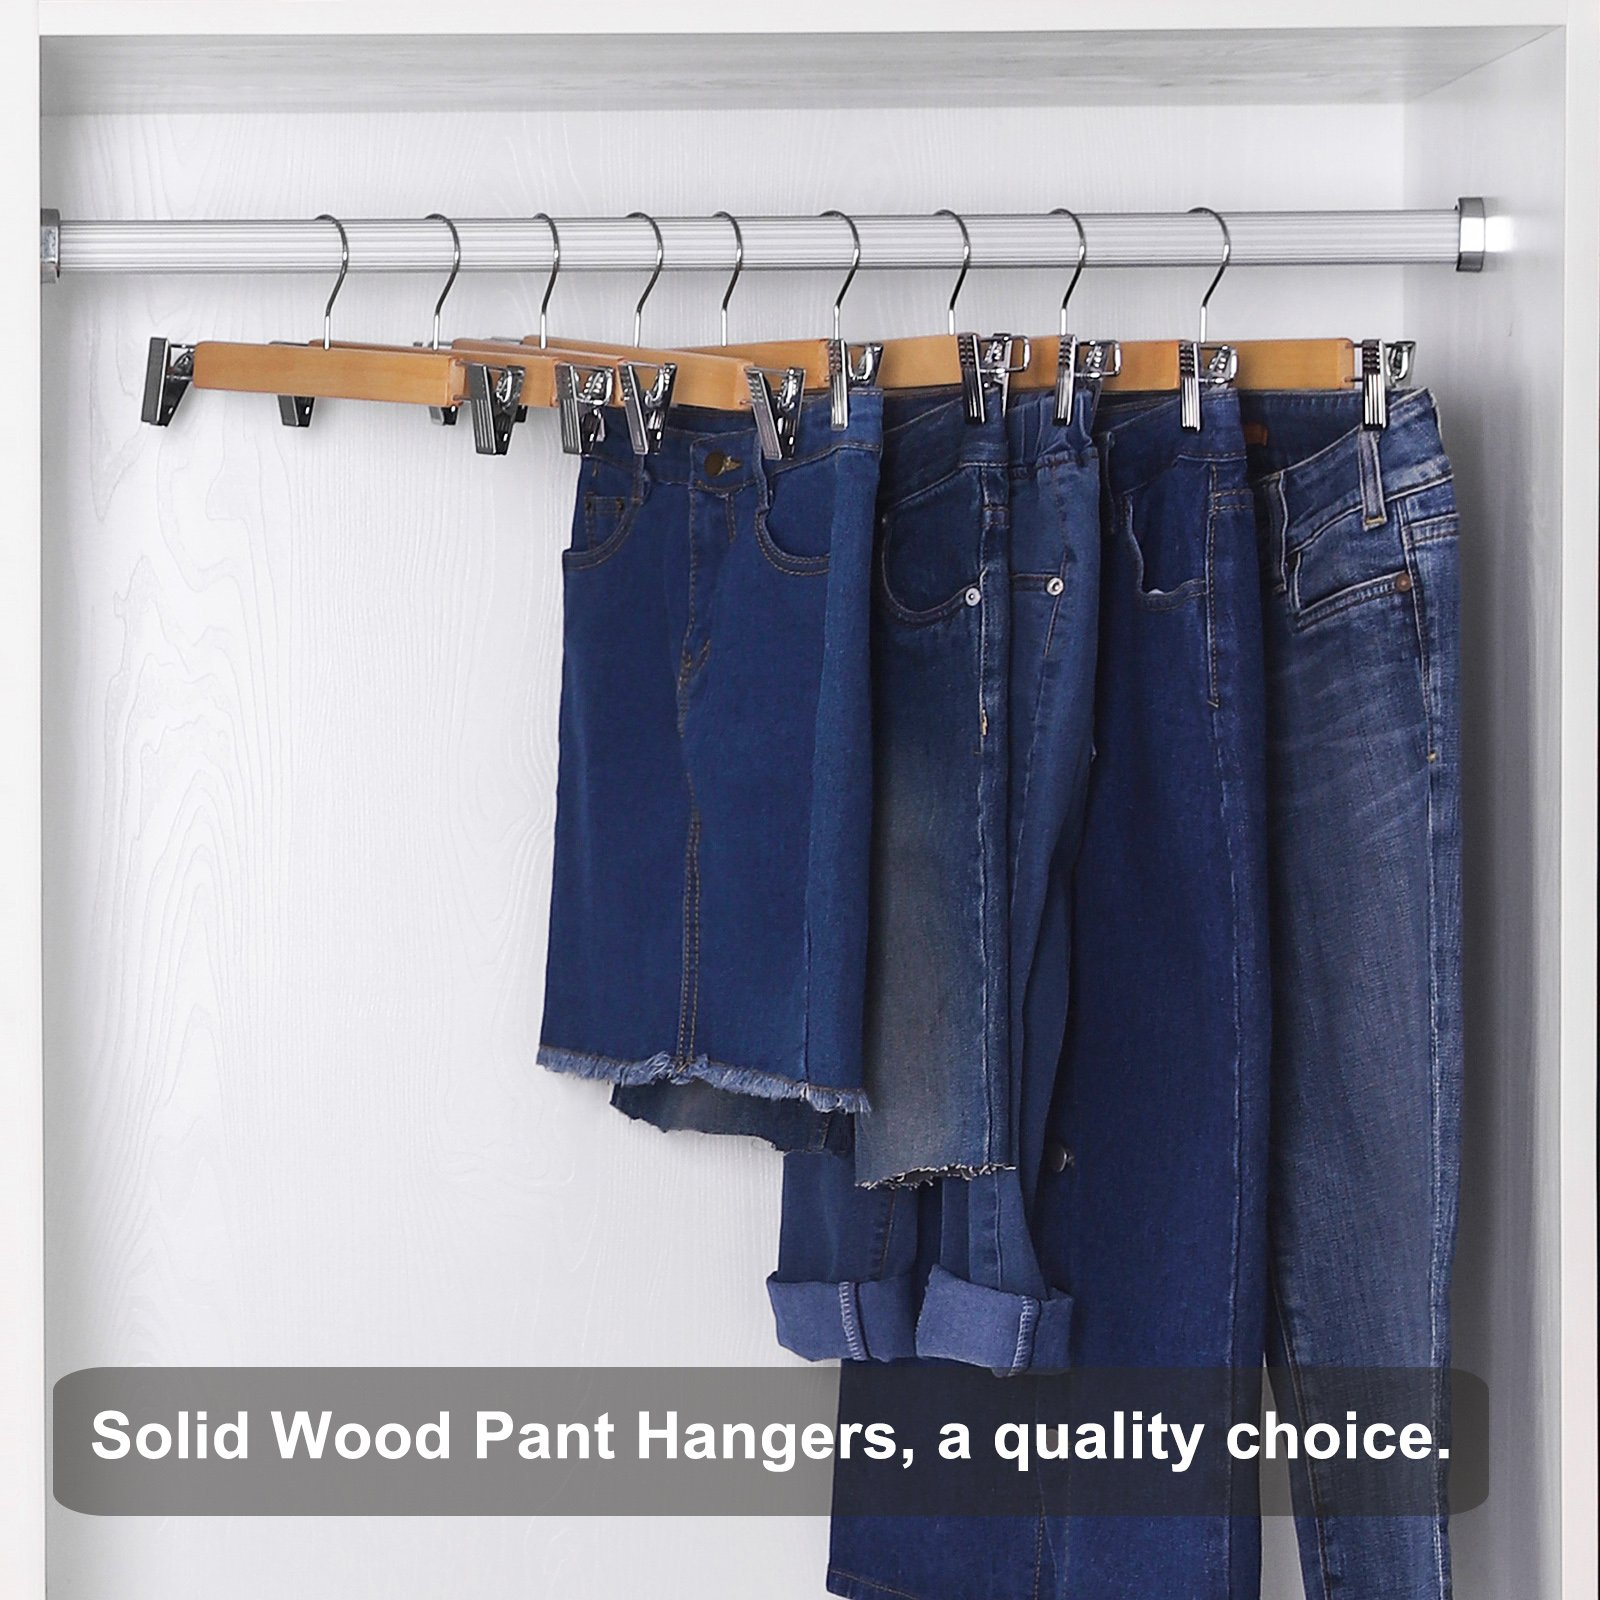 SONGMICS Hangers - Wood Pants Hangers 12 Pack Adjustable Anti-Rust Metal Clips (10.8'' - 13.0''), Perfect Skirts Pants Slacks Natural Grain UCRW008-12 by SONGMICS (Image #6)